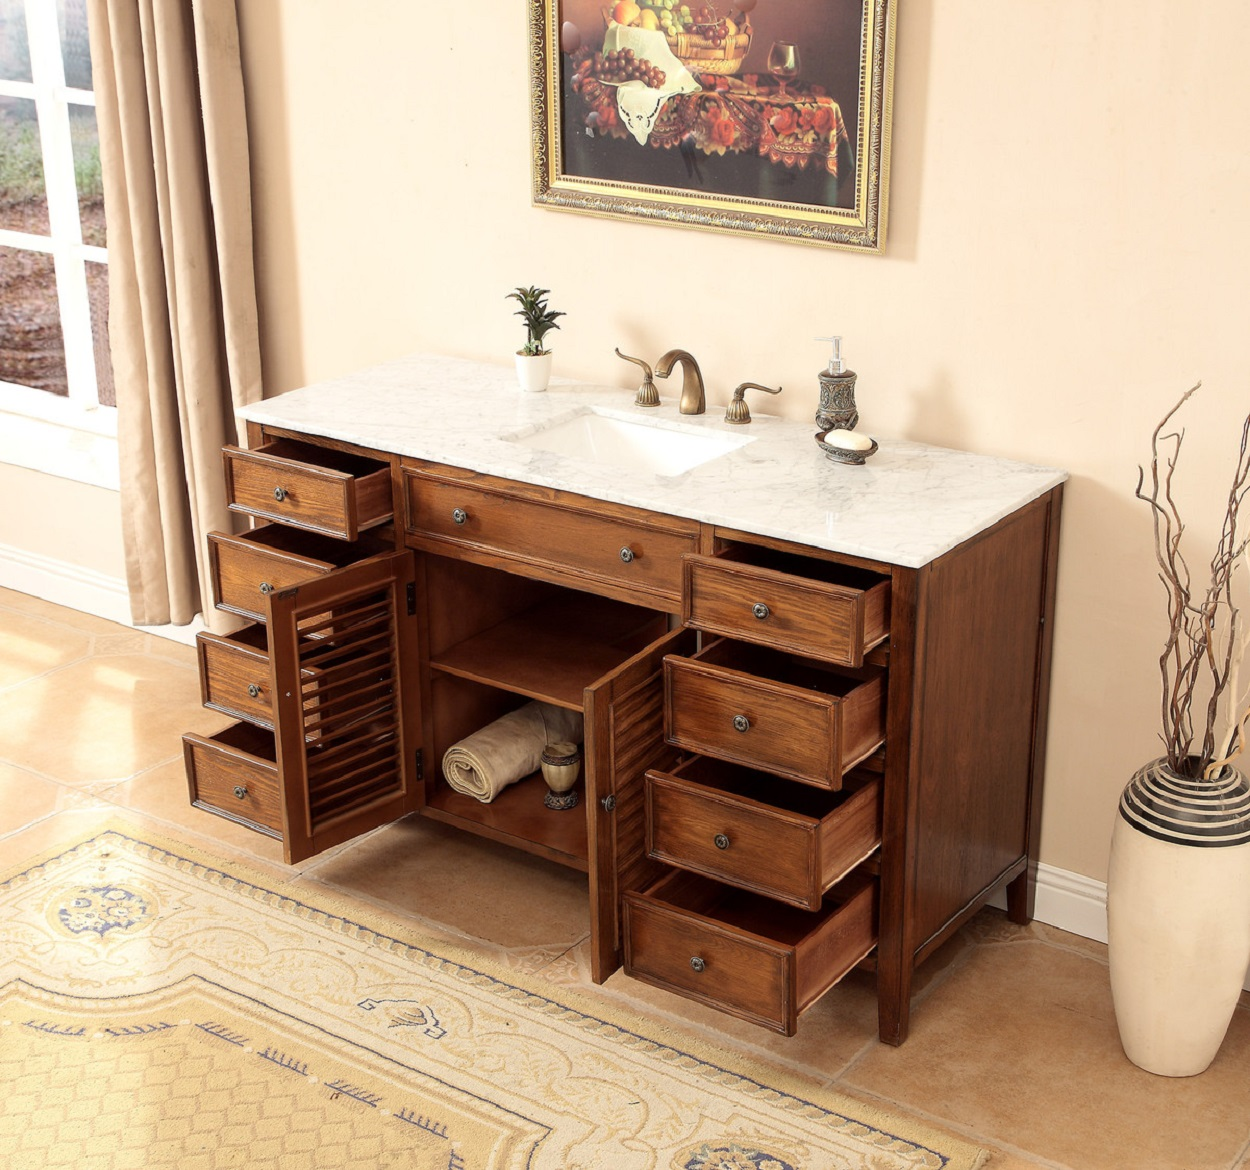 58 Inch Bathroom Vanity Coastal Cottage Beach Style Medium Brown Color 58 Quot Wx21 Quot Dx36 Quot H S112858sk